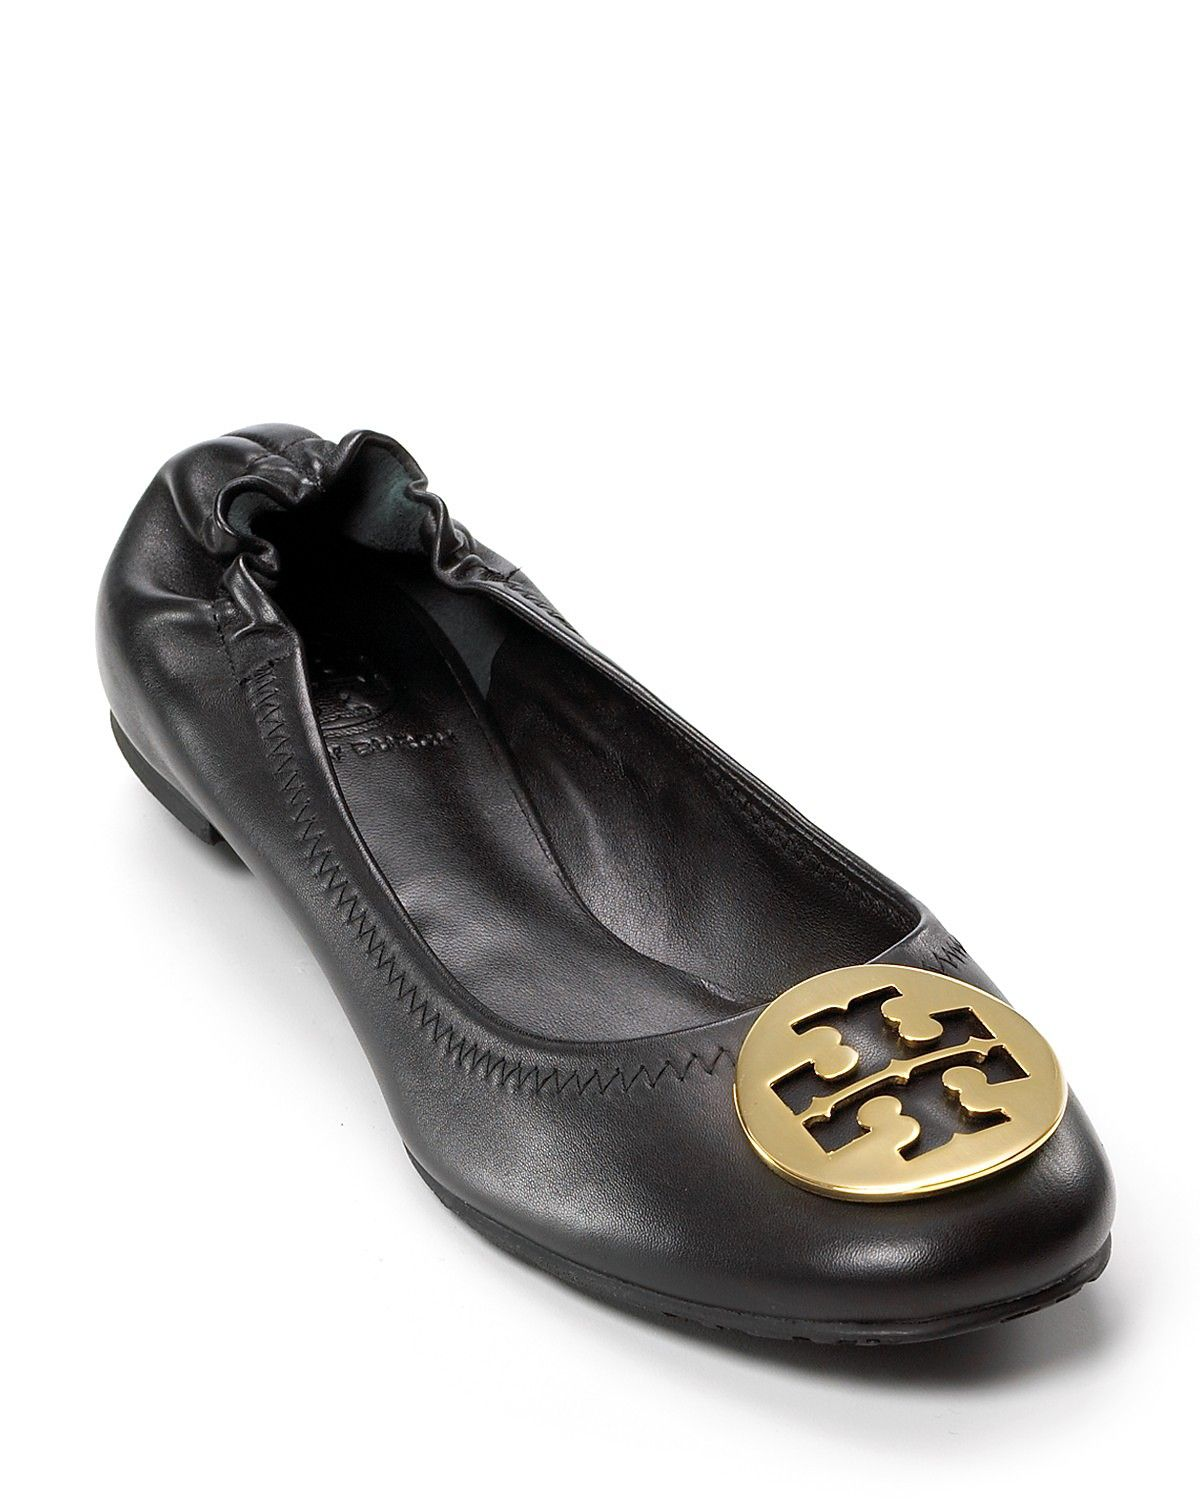 Tory Burch flats. I have these in patent leather, but would always love some